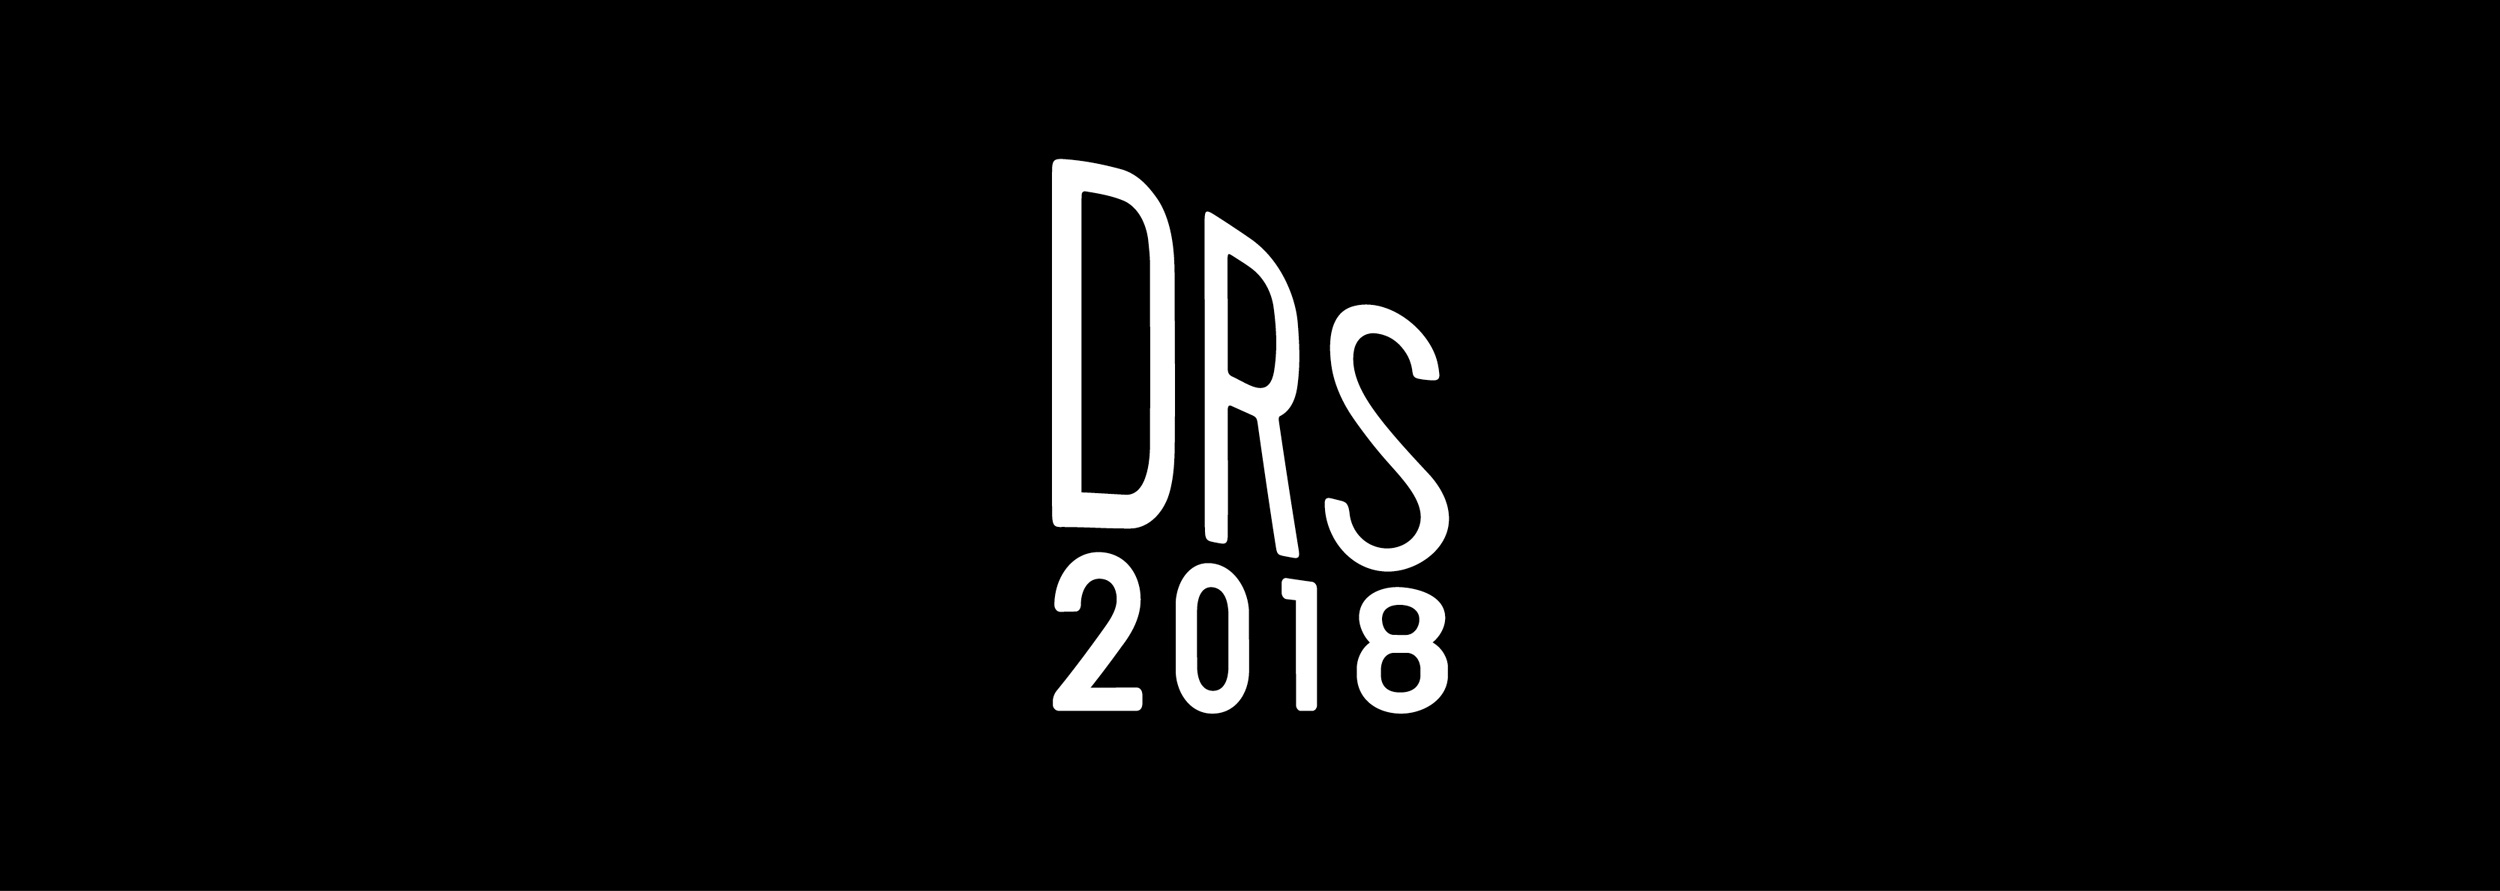 DRS2018 Brand Development